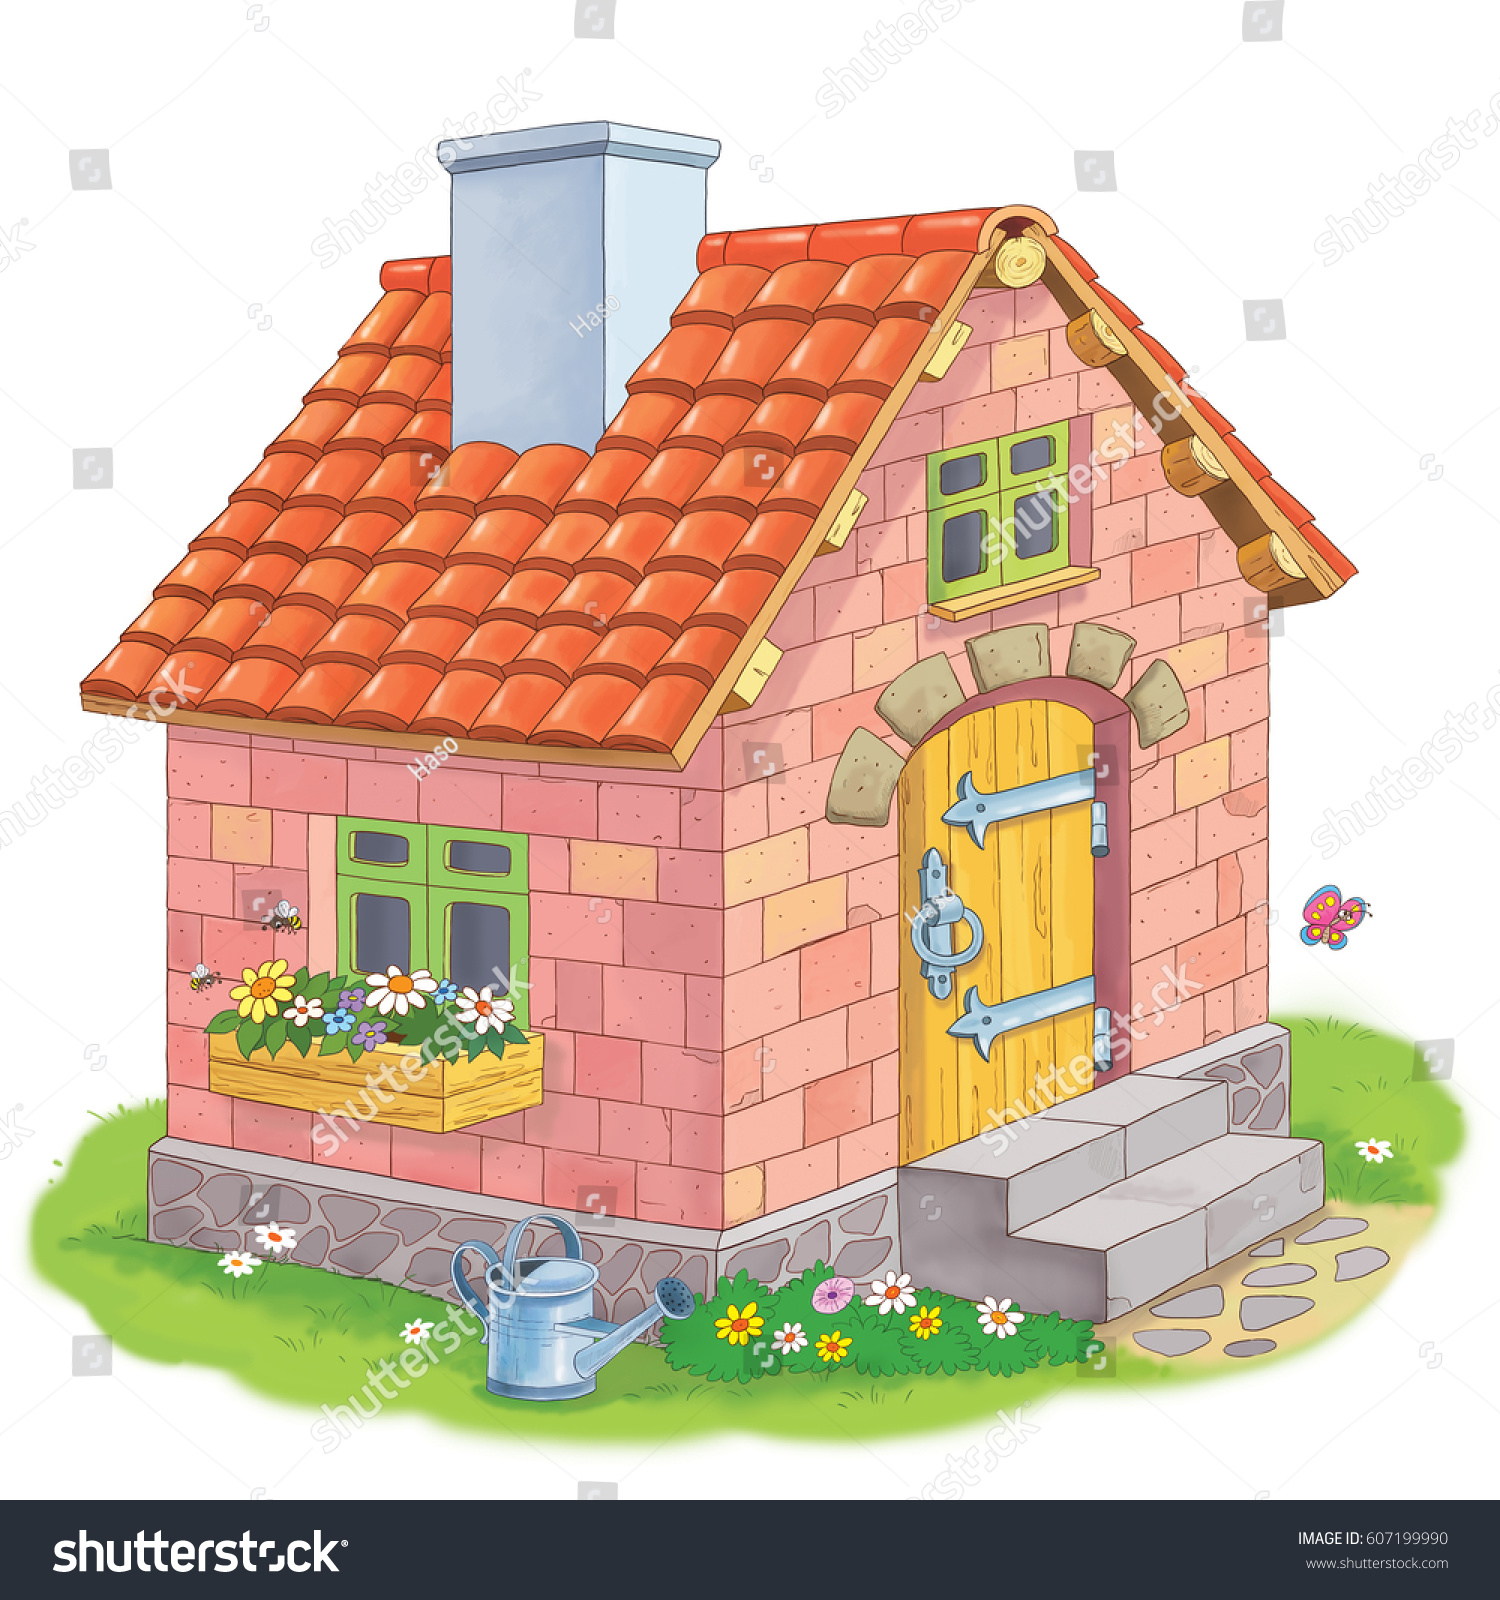 A cute house made of bricks three little pigs fairy tale coloring book coloring page funny cartoon characters illustration